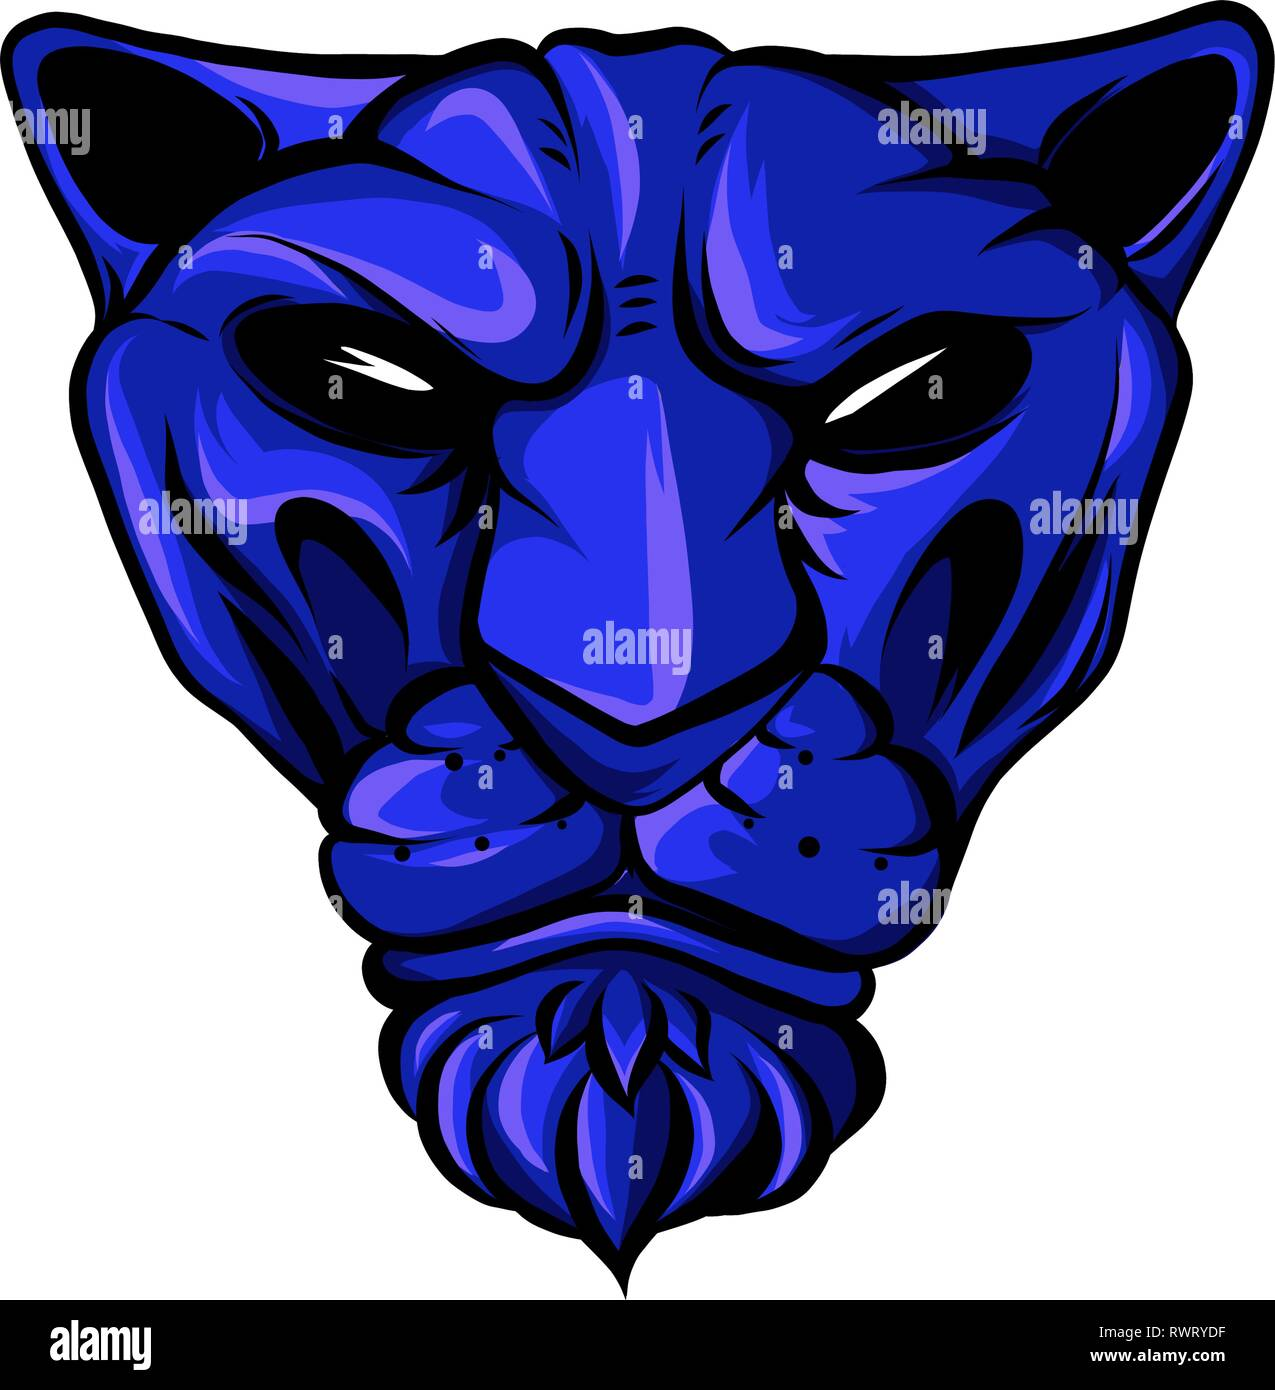 face of a drawn blue tiger illustration - Stock Vector